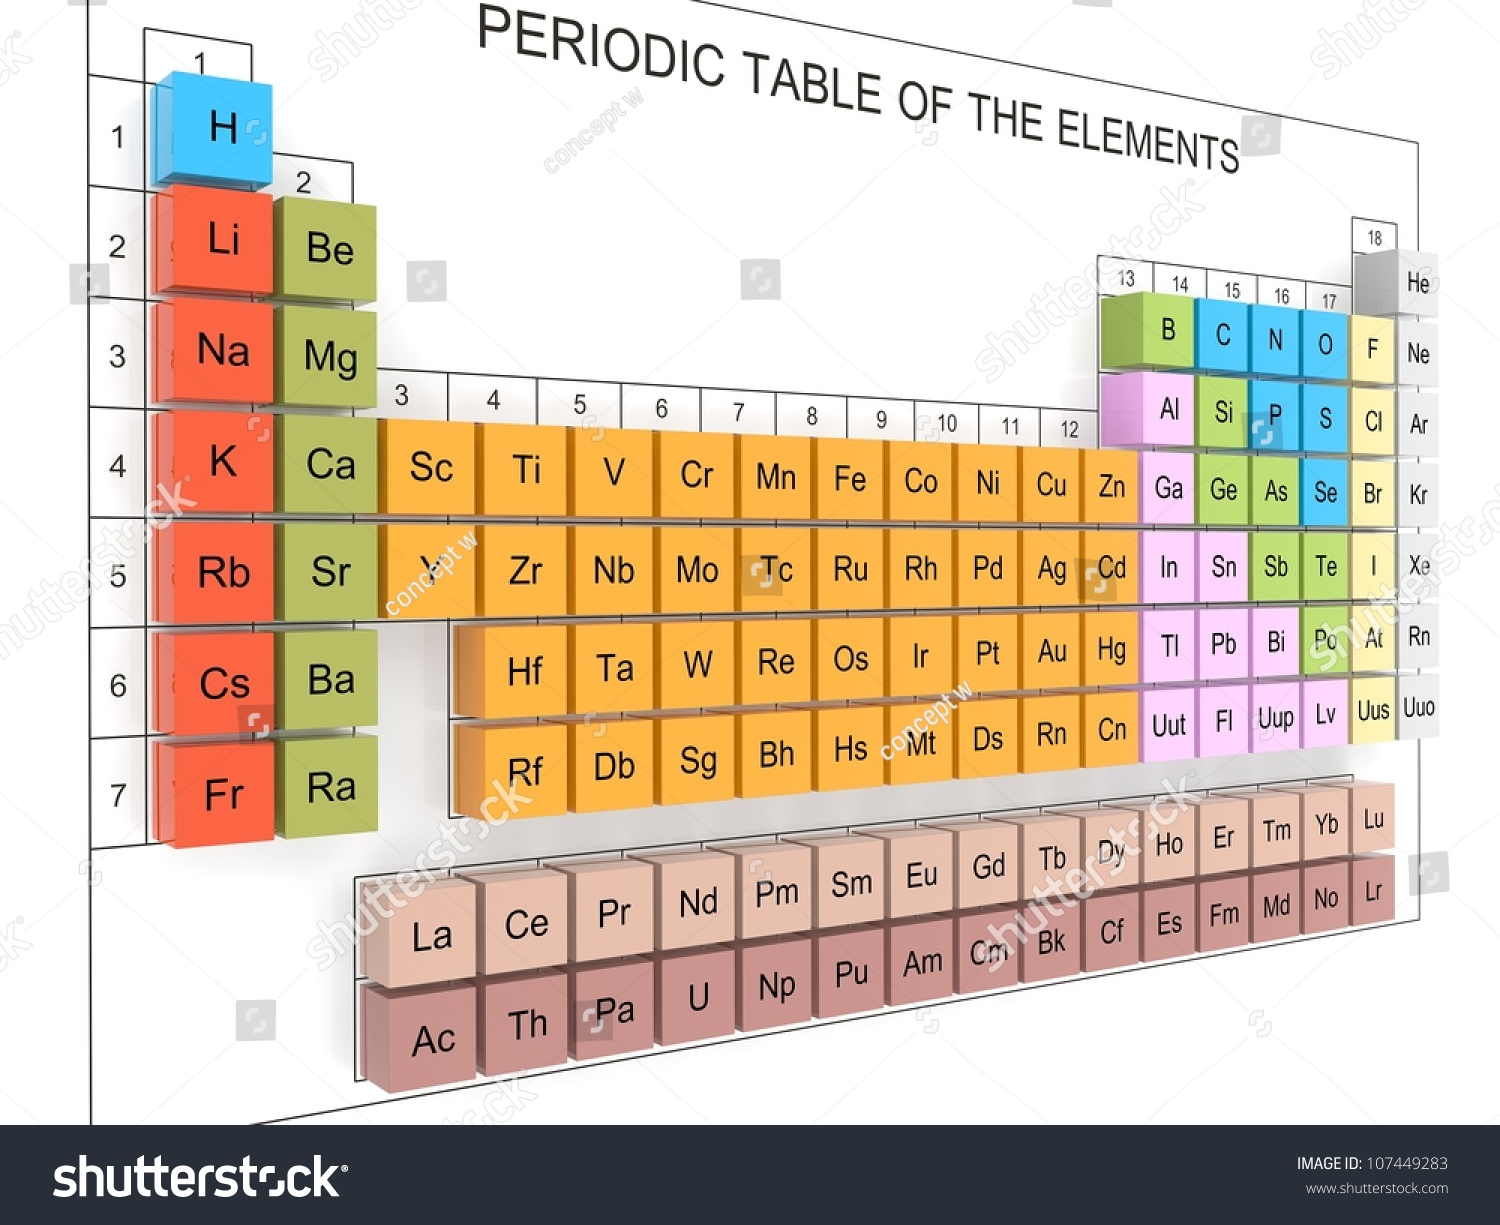 Periodic table elements mendeleev table on stock illustration periodic table of the elements mendeleev table on wall gamestrikefo Image collections